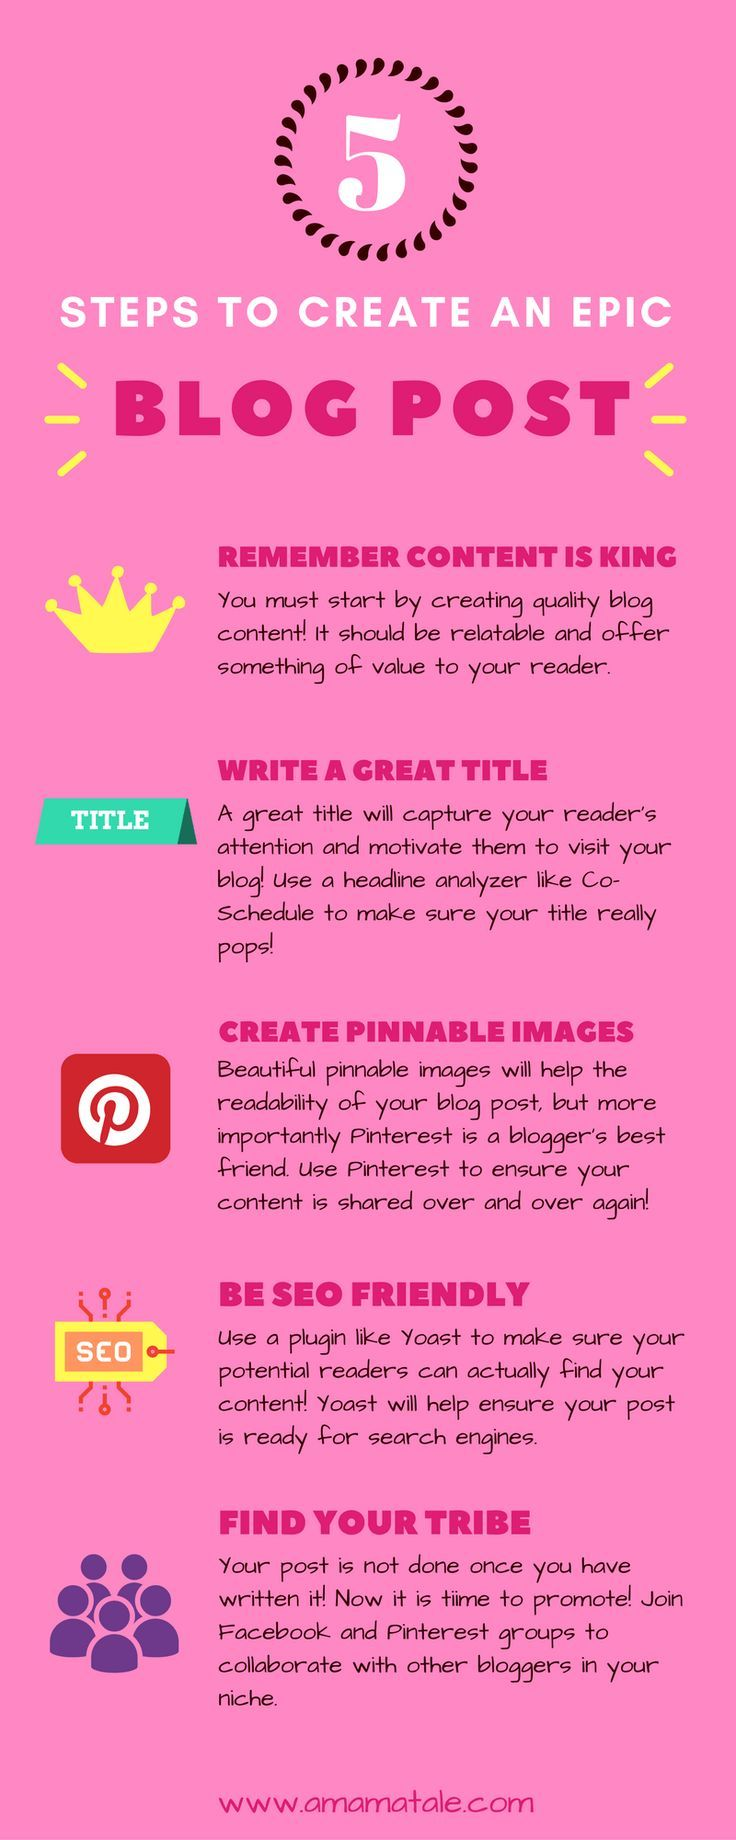 5 Steps to Create an Epic Blog Post What every blog post really needs to get great blog traffic to your site and more shares of your content. Click to read more blogging tips and tricks! http://www.amamatale.com